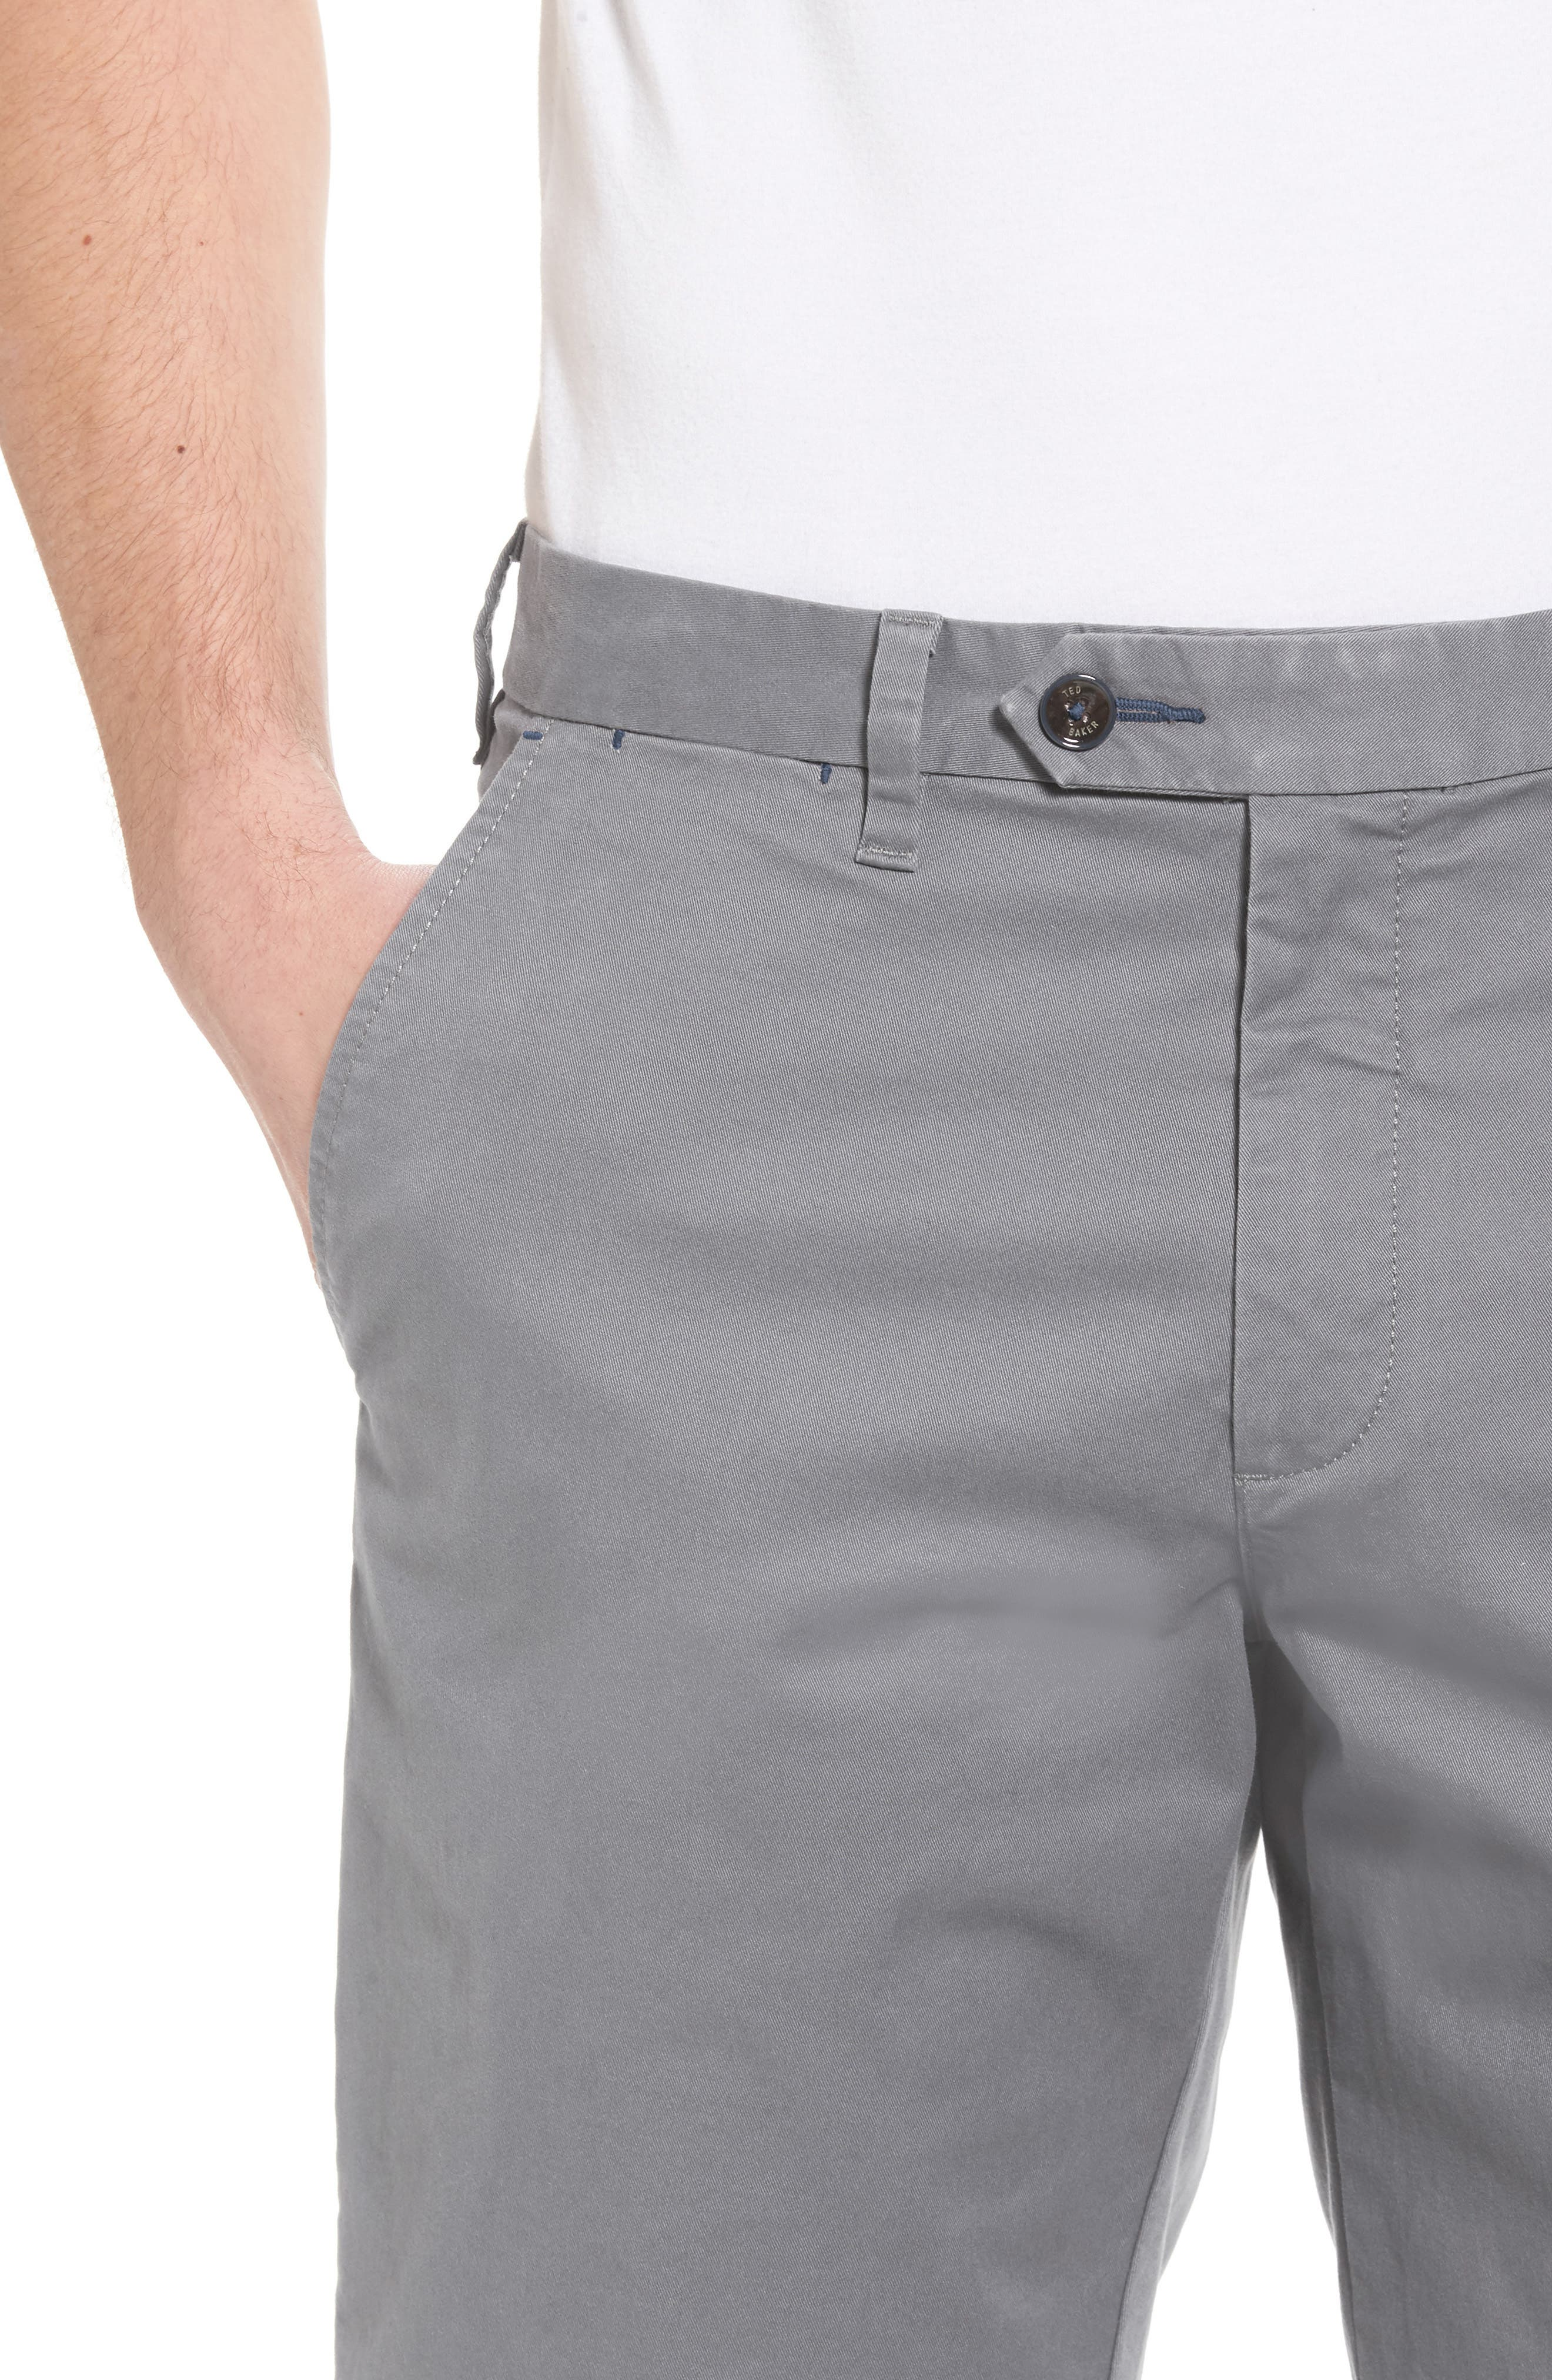 Proshor Slim Fit Chino Shorts,                             Alternate thumbnail 4, color,                             050